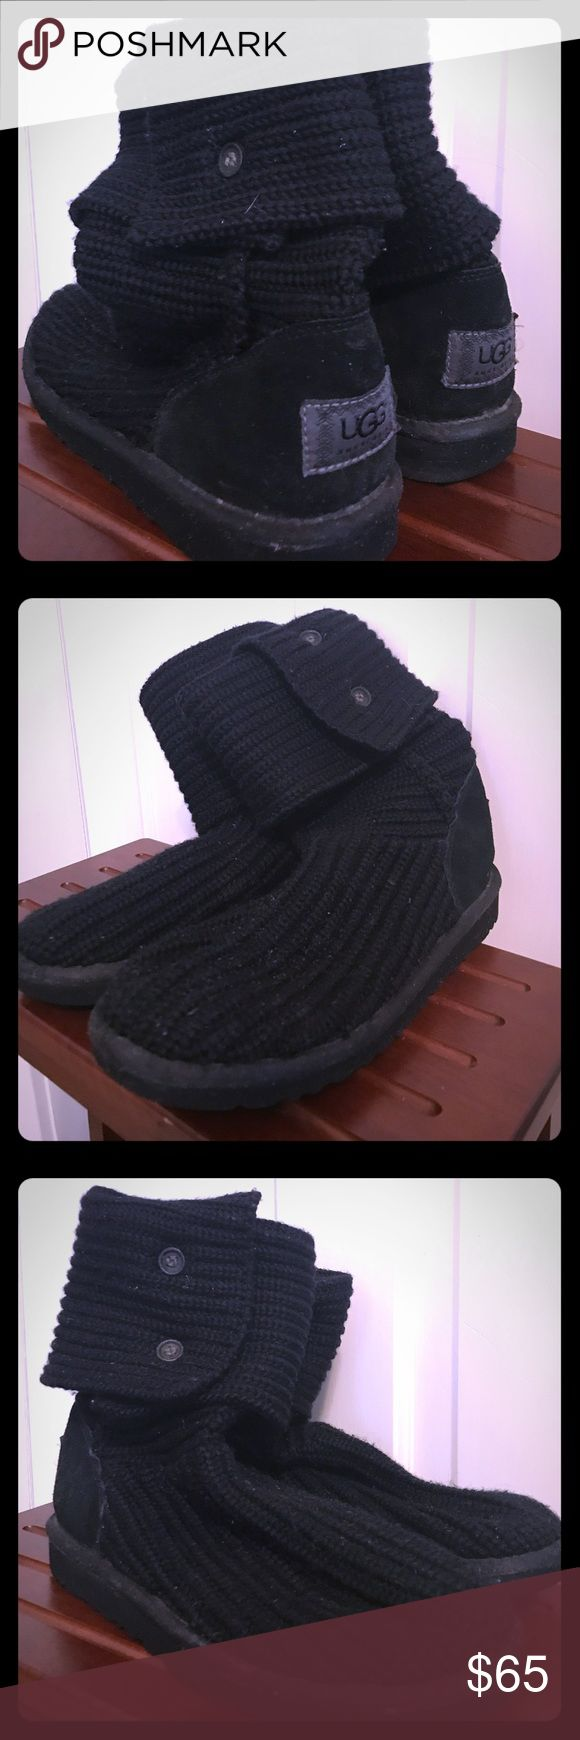 UGG Classic Cardy Boots UGG Classic Cardy style boots. Worn very few times but because it's wool, it has pilled a little over time, suede heel is like new, and bottom sole has signs of dried salt UGG Shoes Winter & Rain Boots